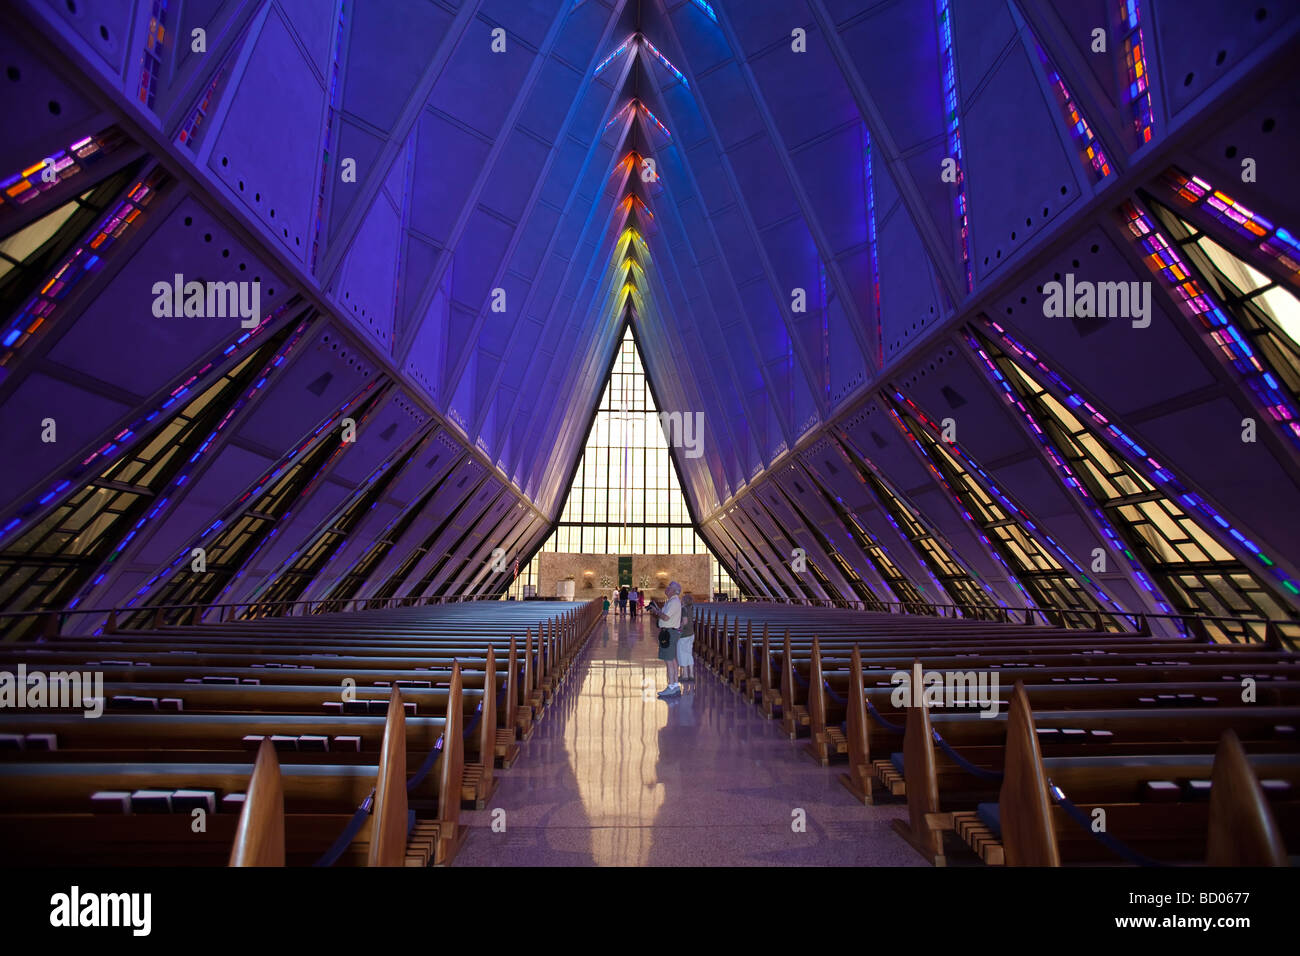 Colorado Springs Colorado The inside of the Cadet Chapel at the United States Air Force Academy - Stock Image